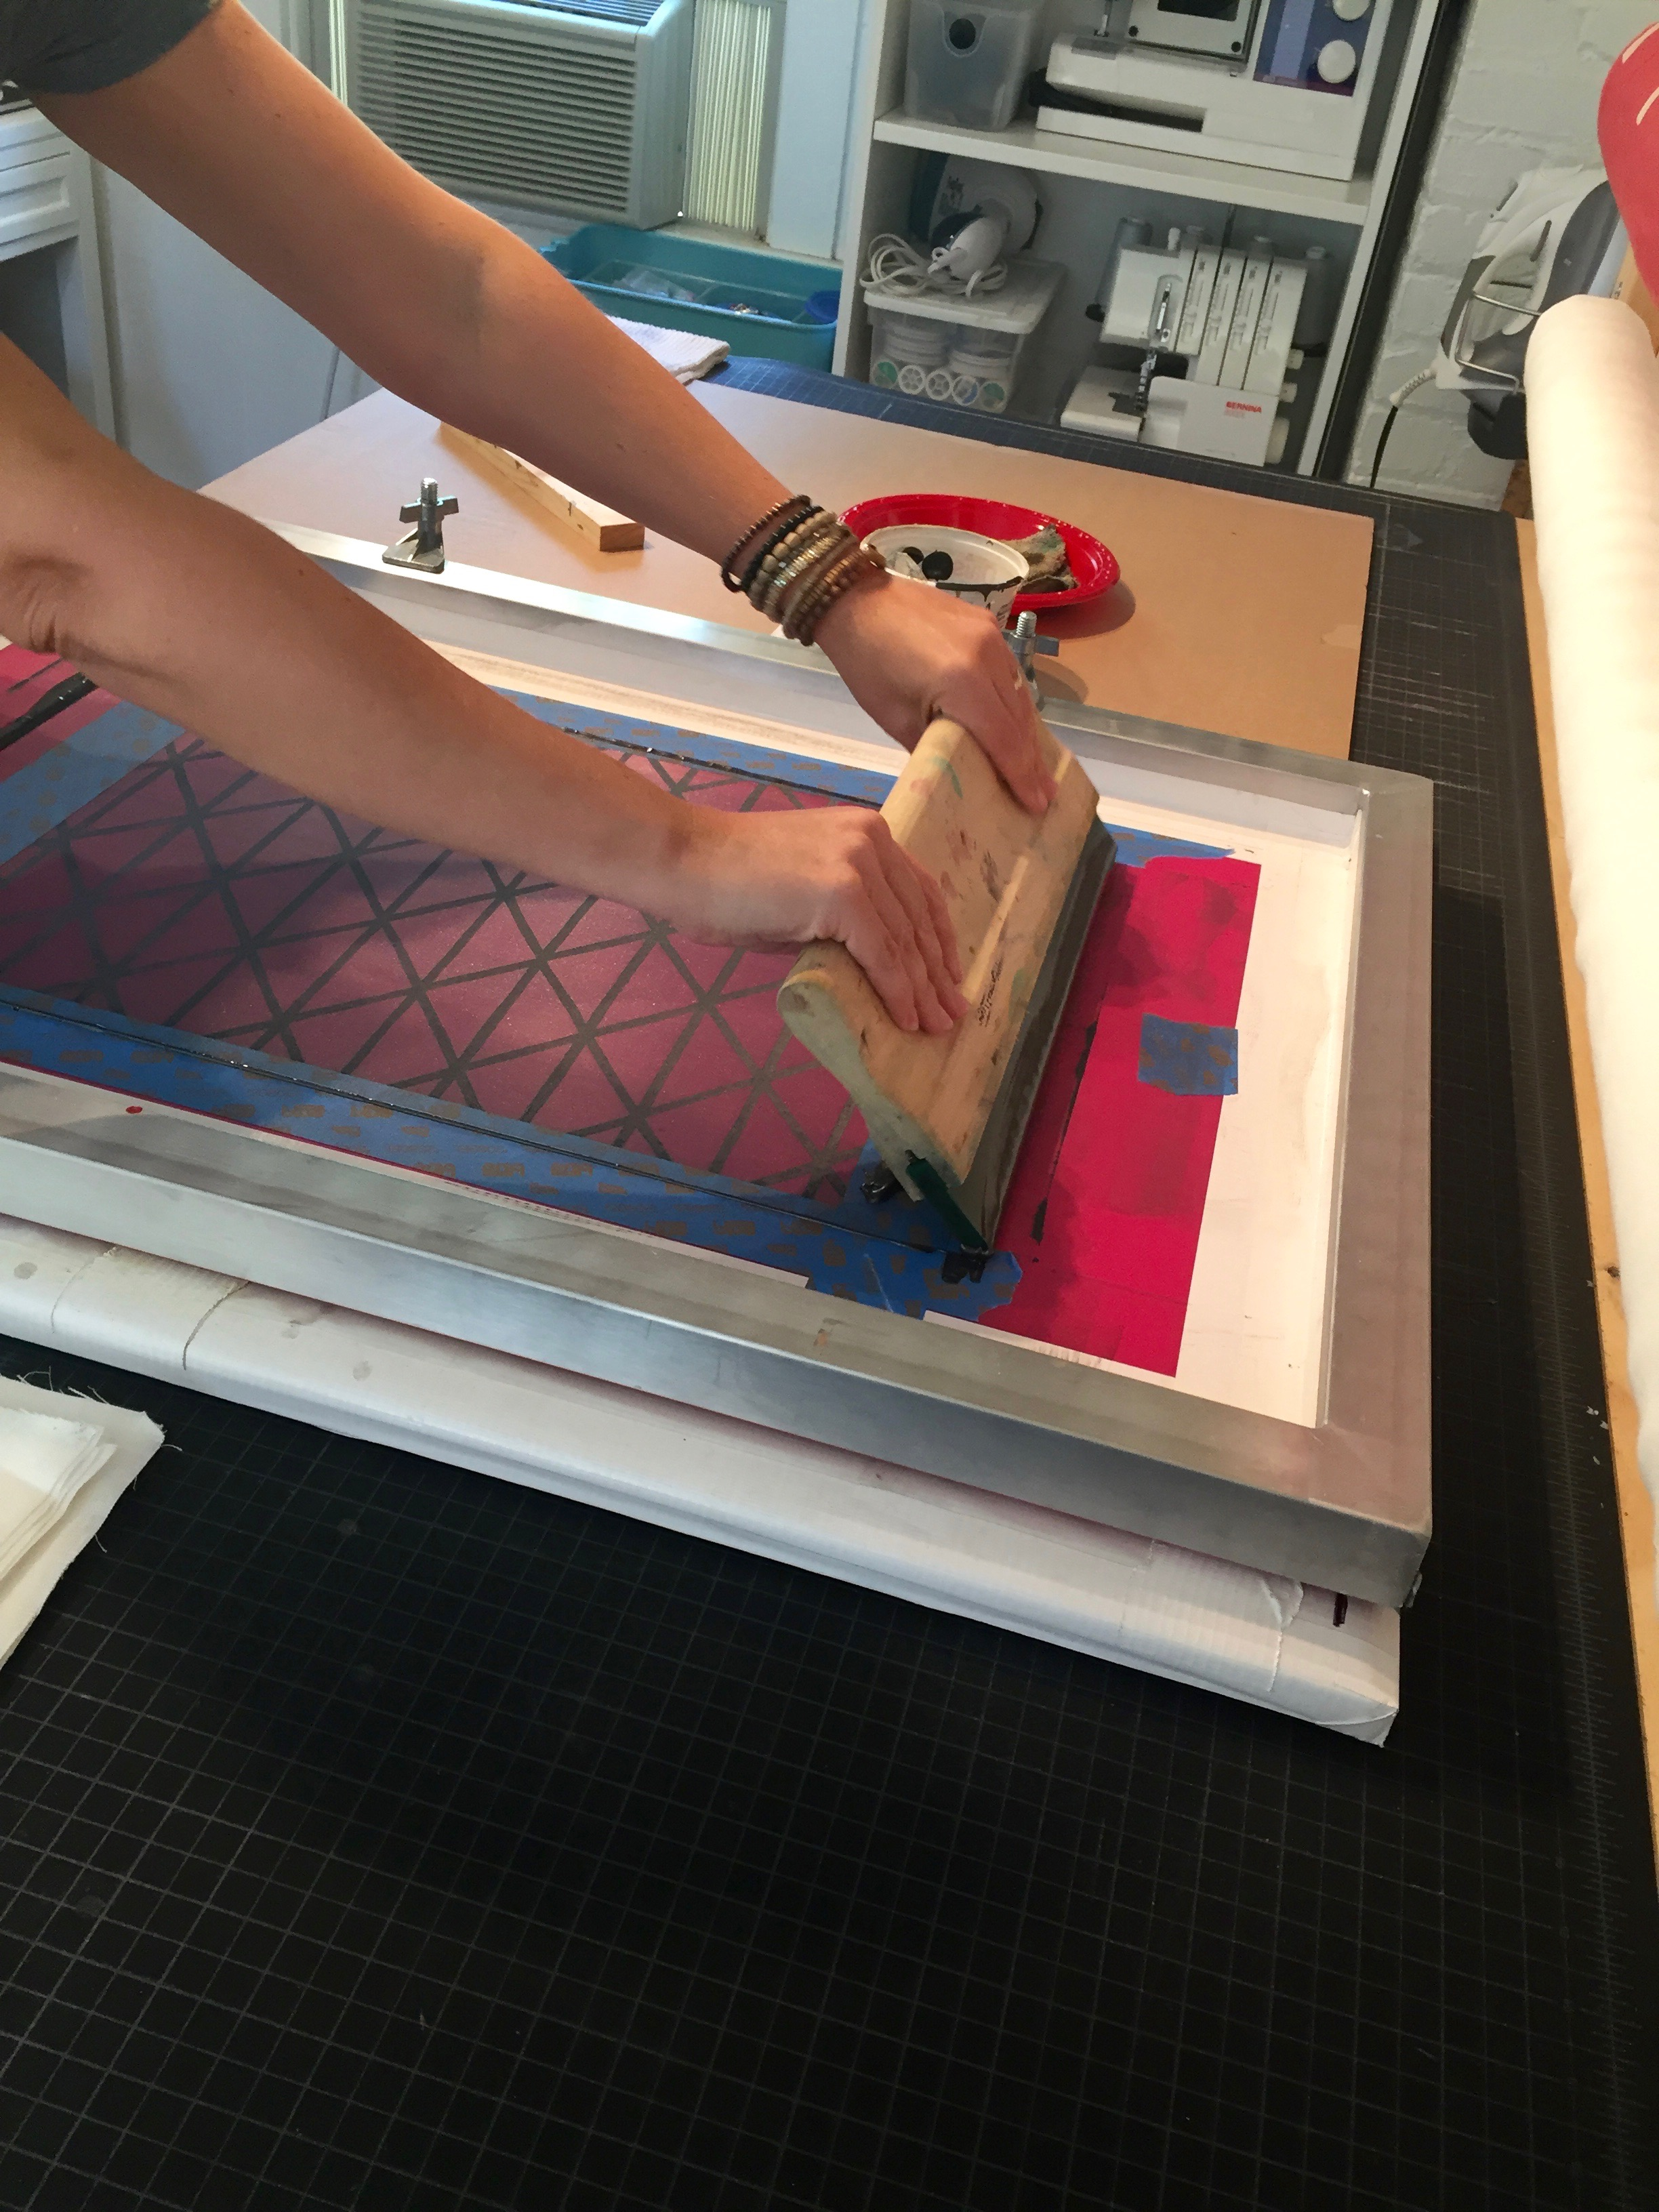 Working the ink through and pressing into the fabric